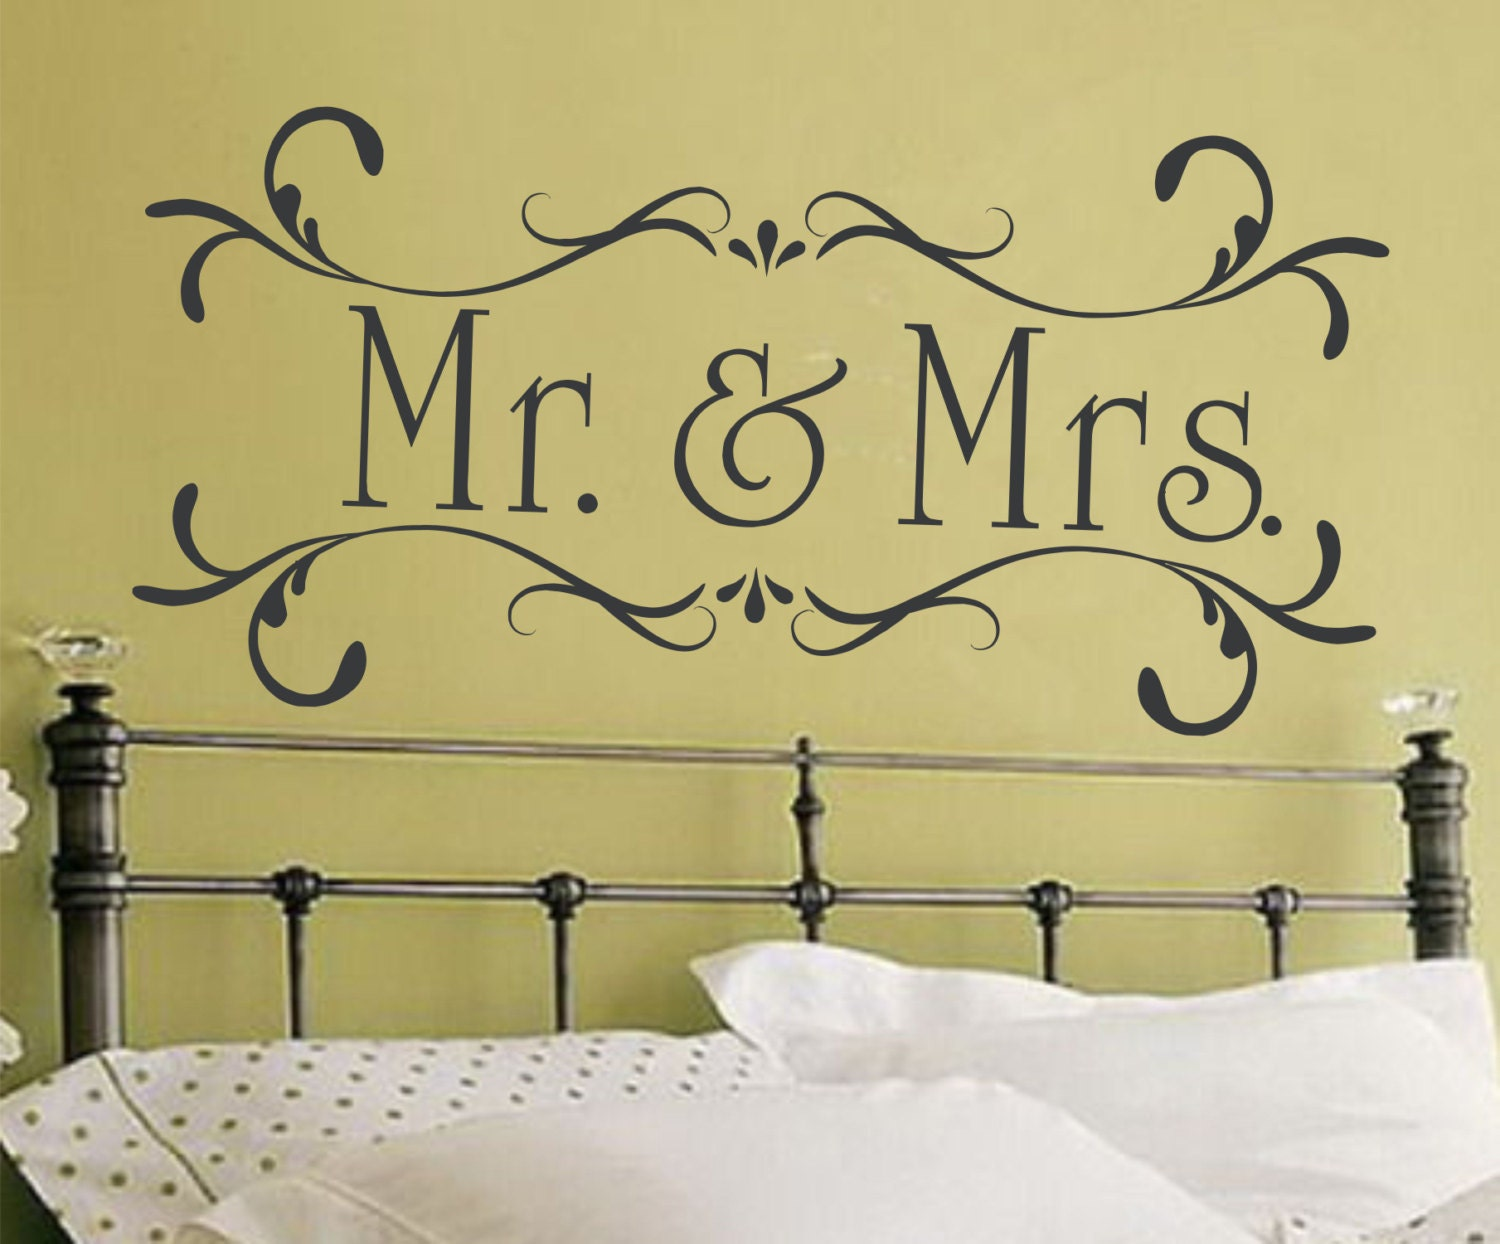 Mr and Mrs Wall Decal Couple Wall Decal Husband and Wife Decal